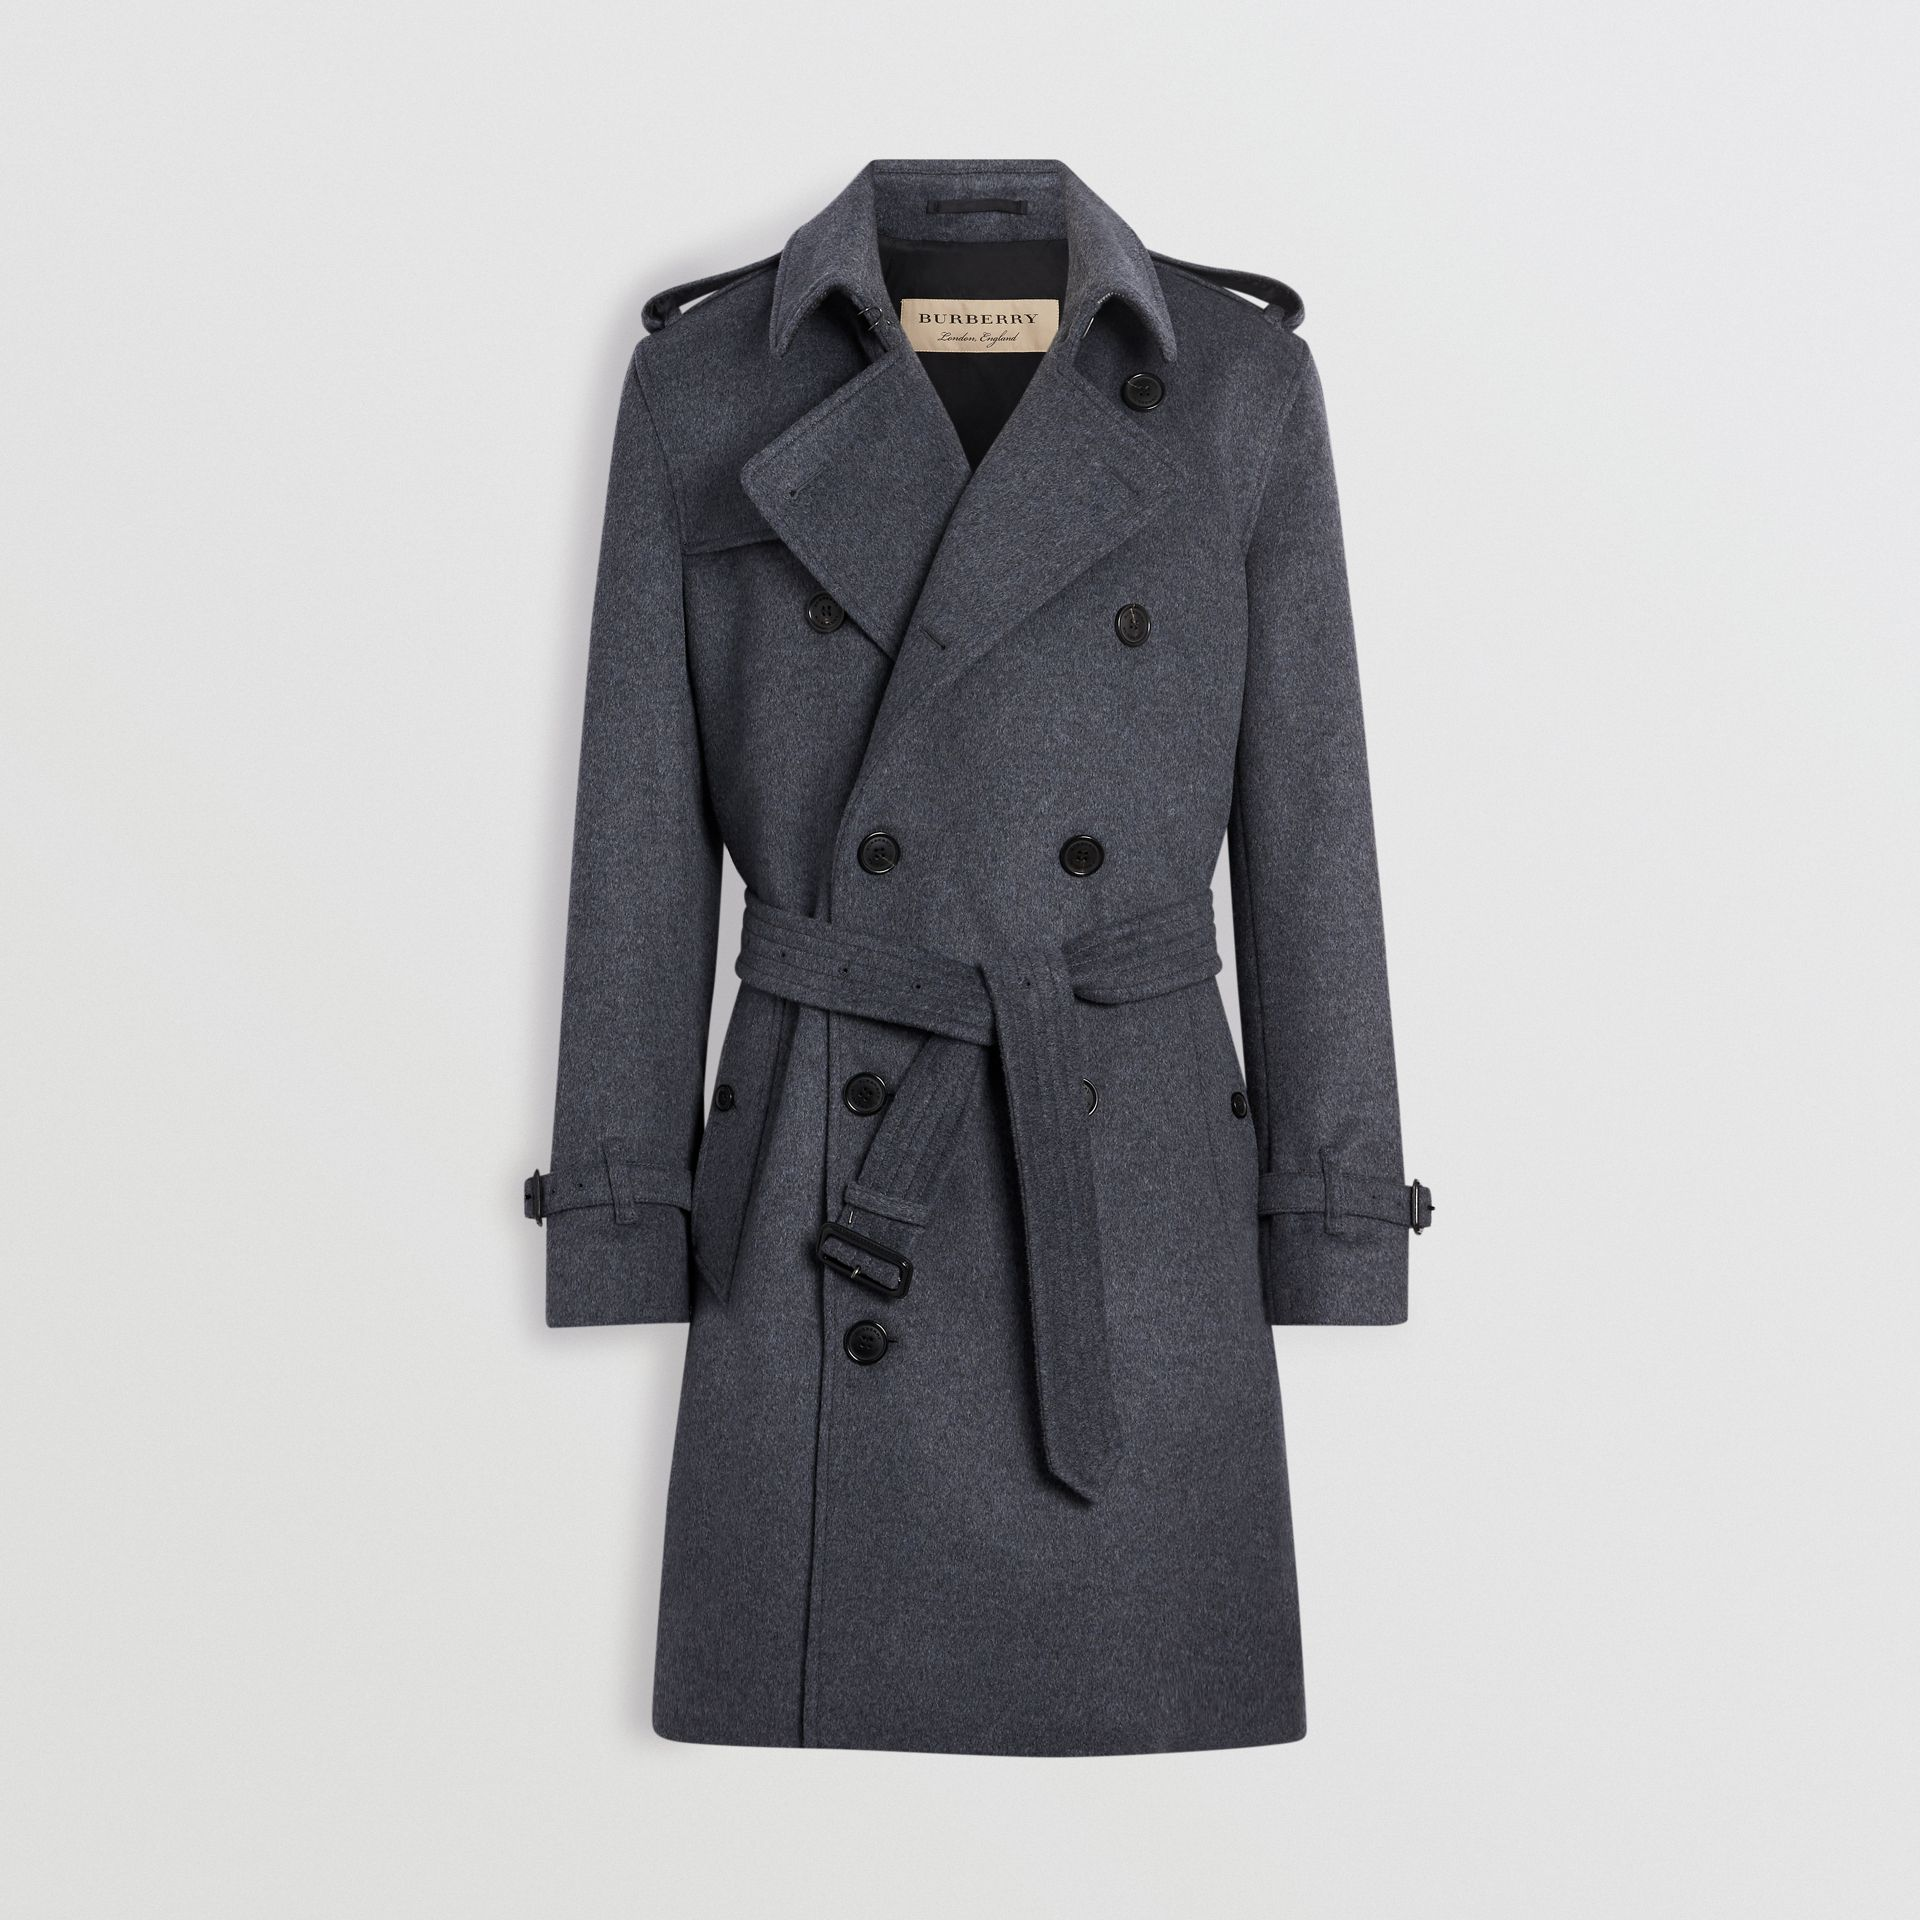 Burberry Pewter Melange Wool Cashmere Trench Coat